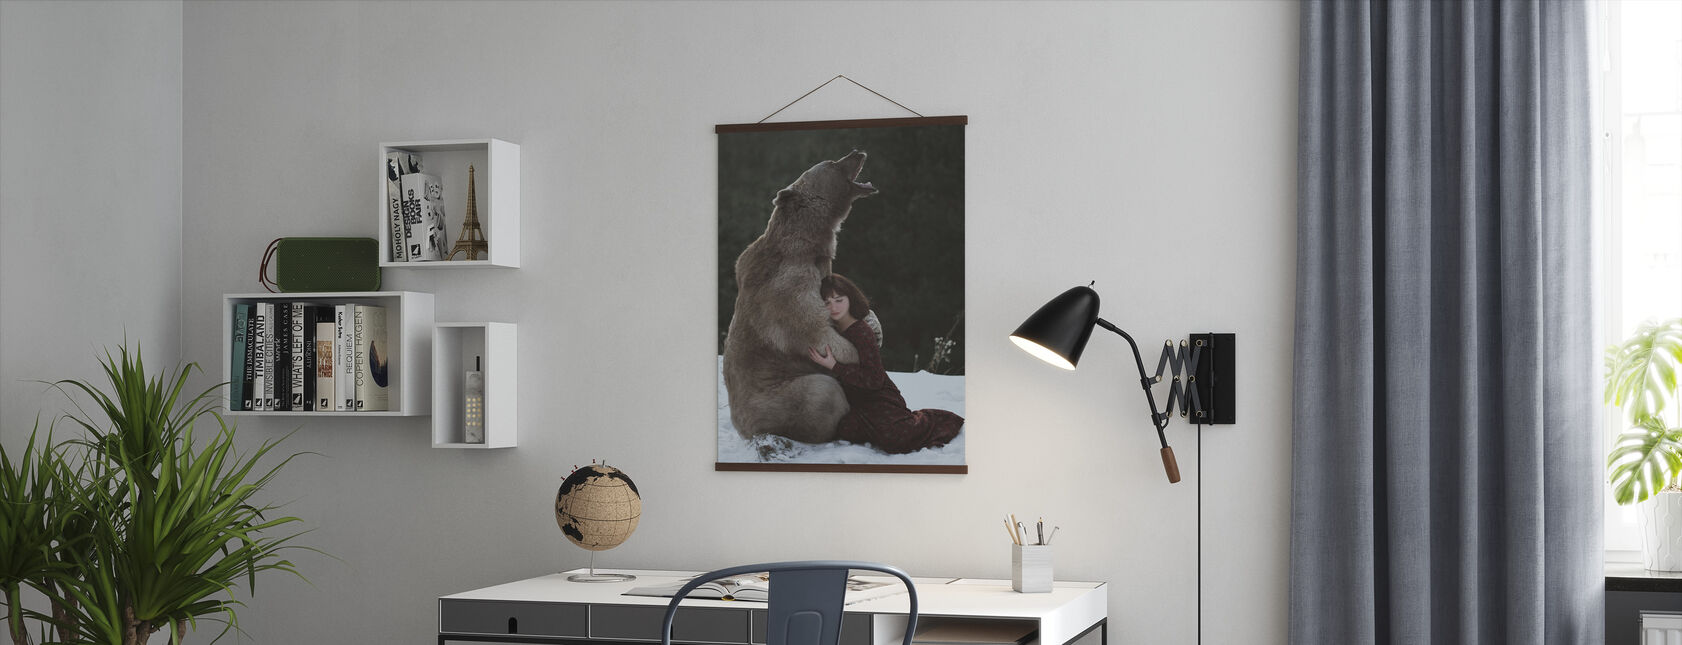 My Big Friend - Poster - Office